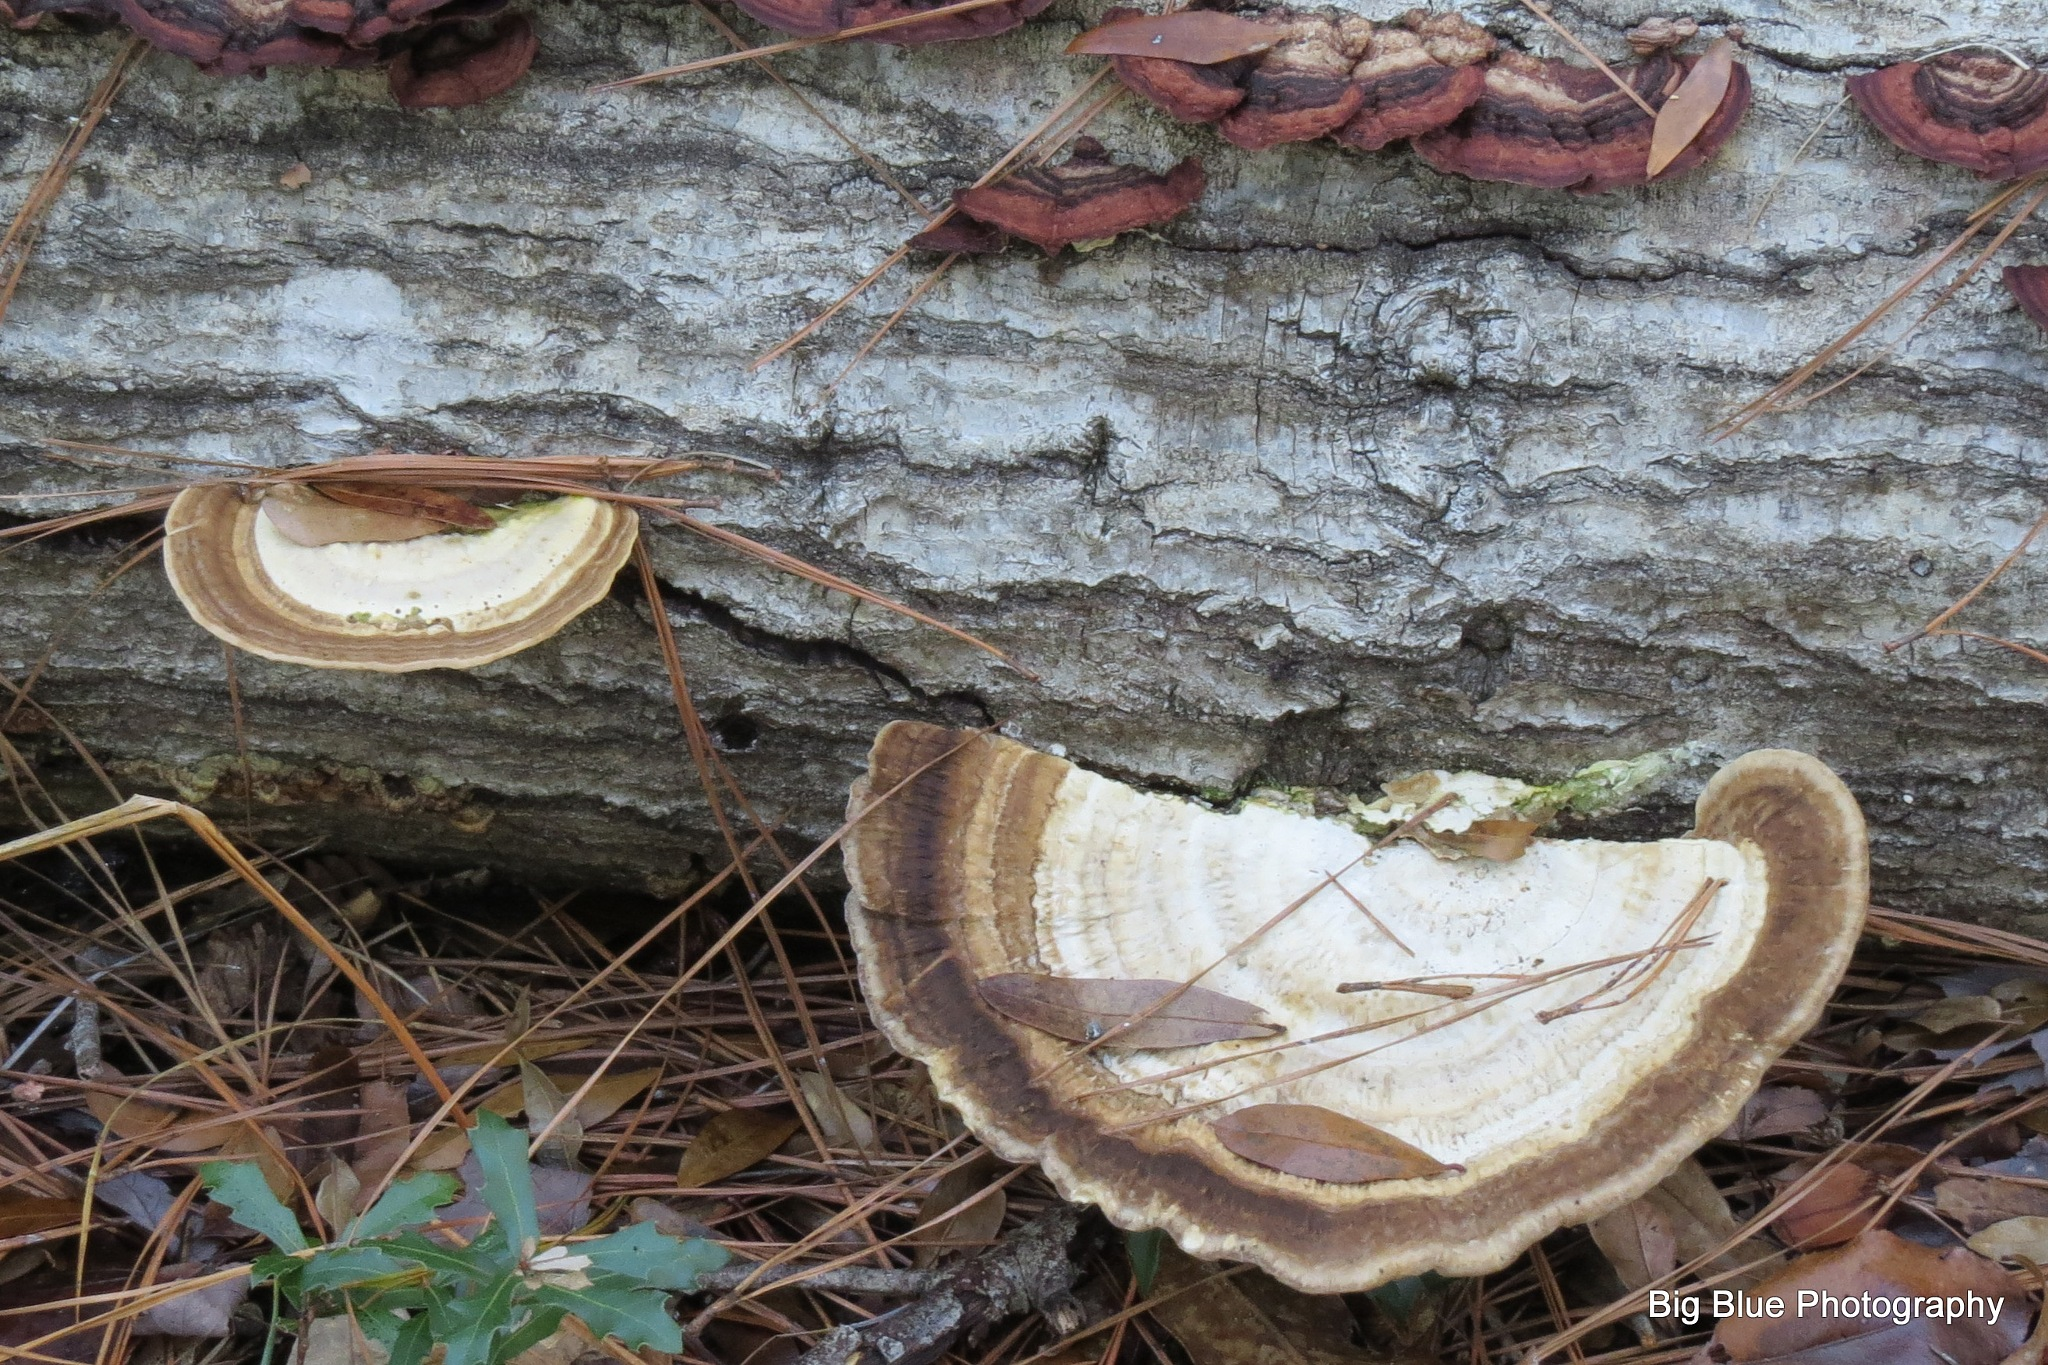 Turkey Tail Mushrooms by Sierra St Francis Photography